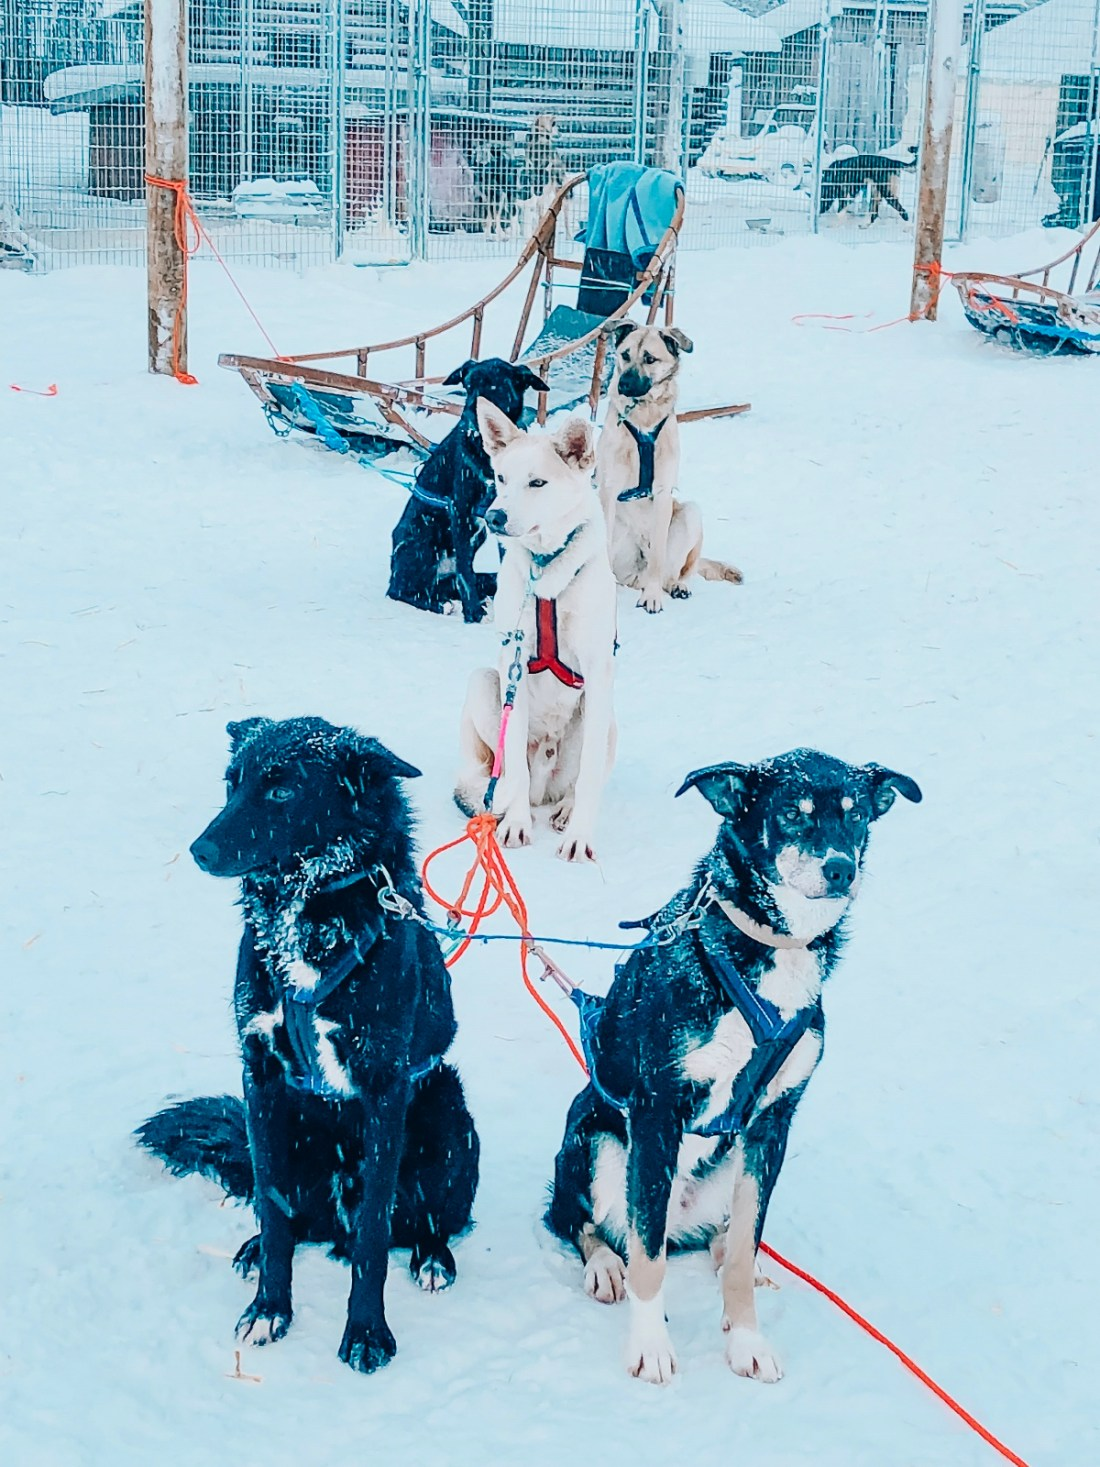 Bearhill Husky Dogs with Sled